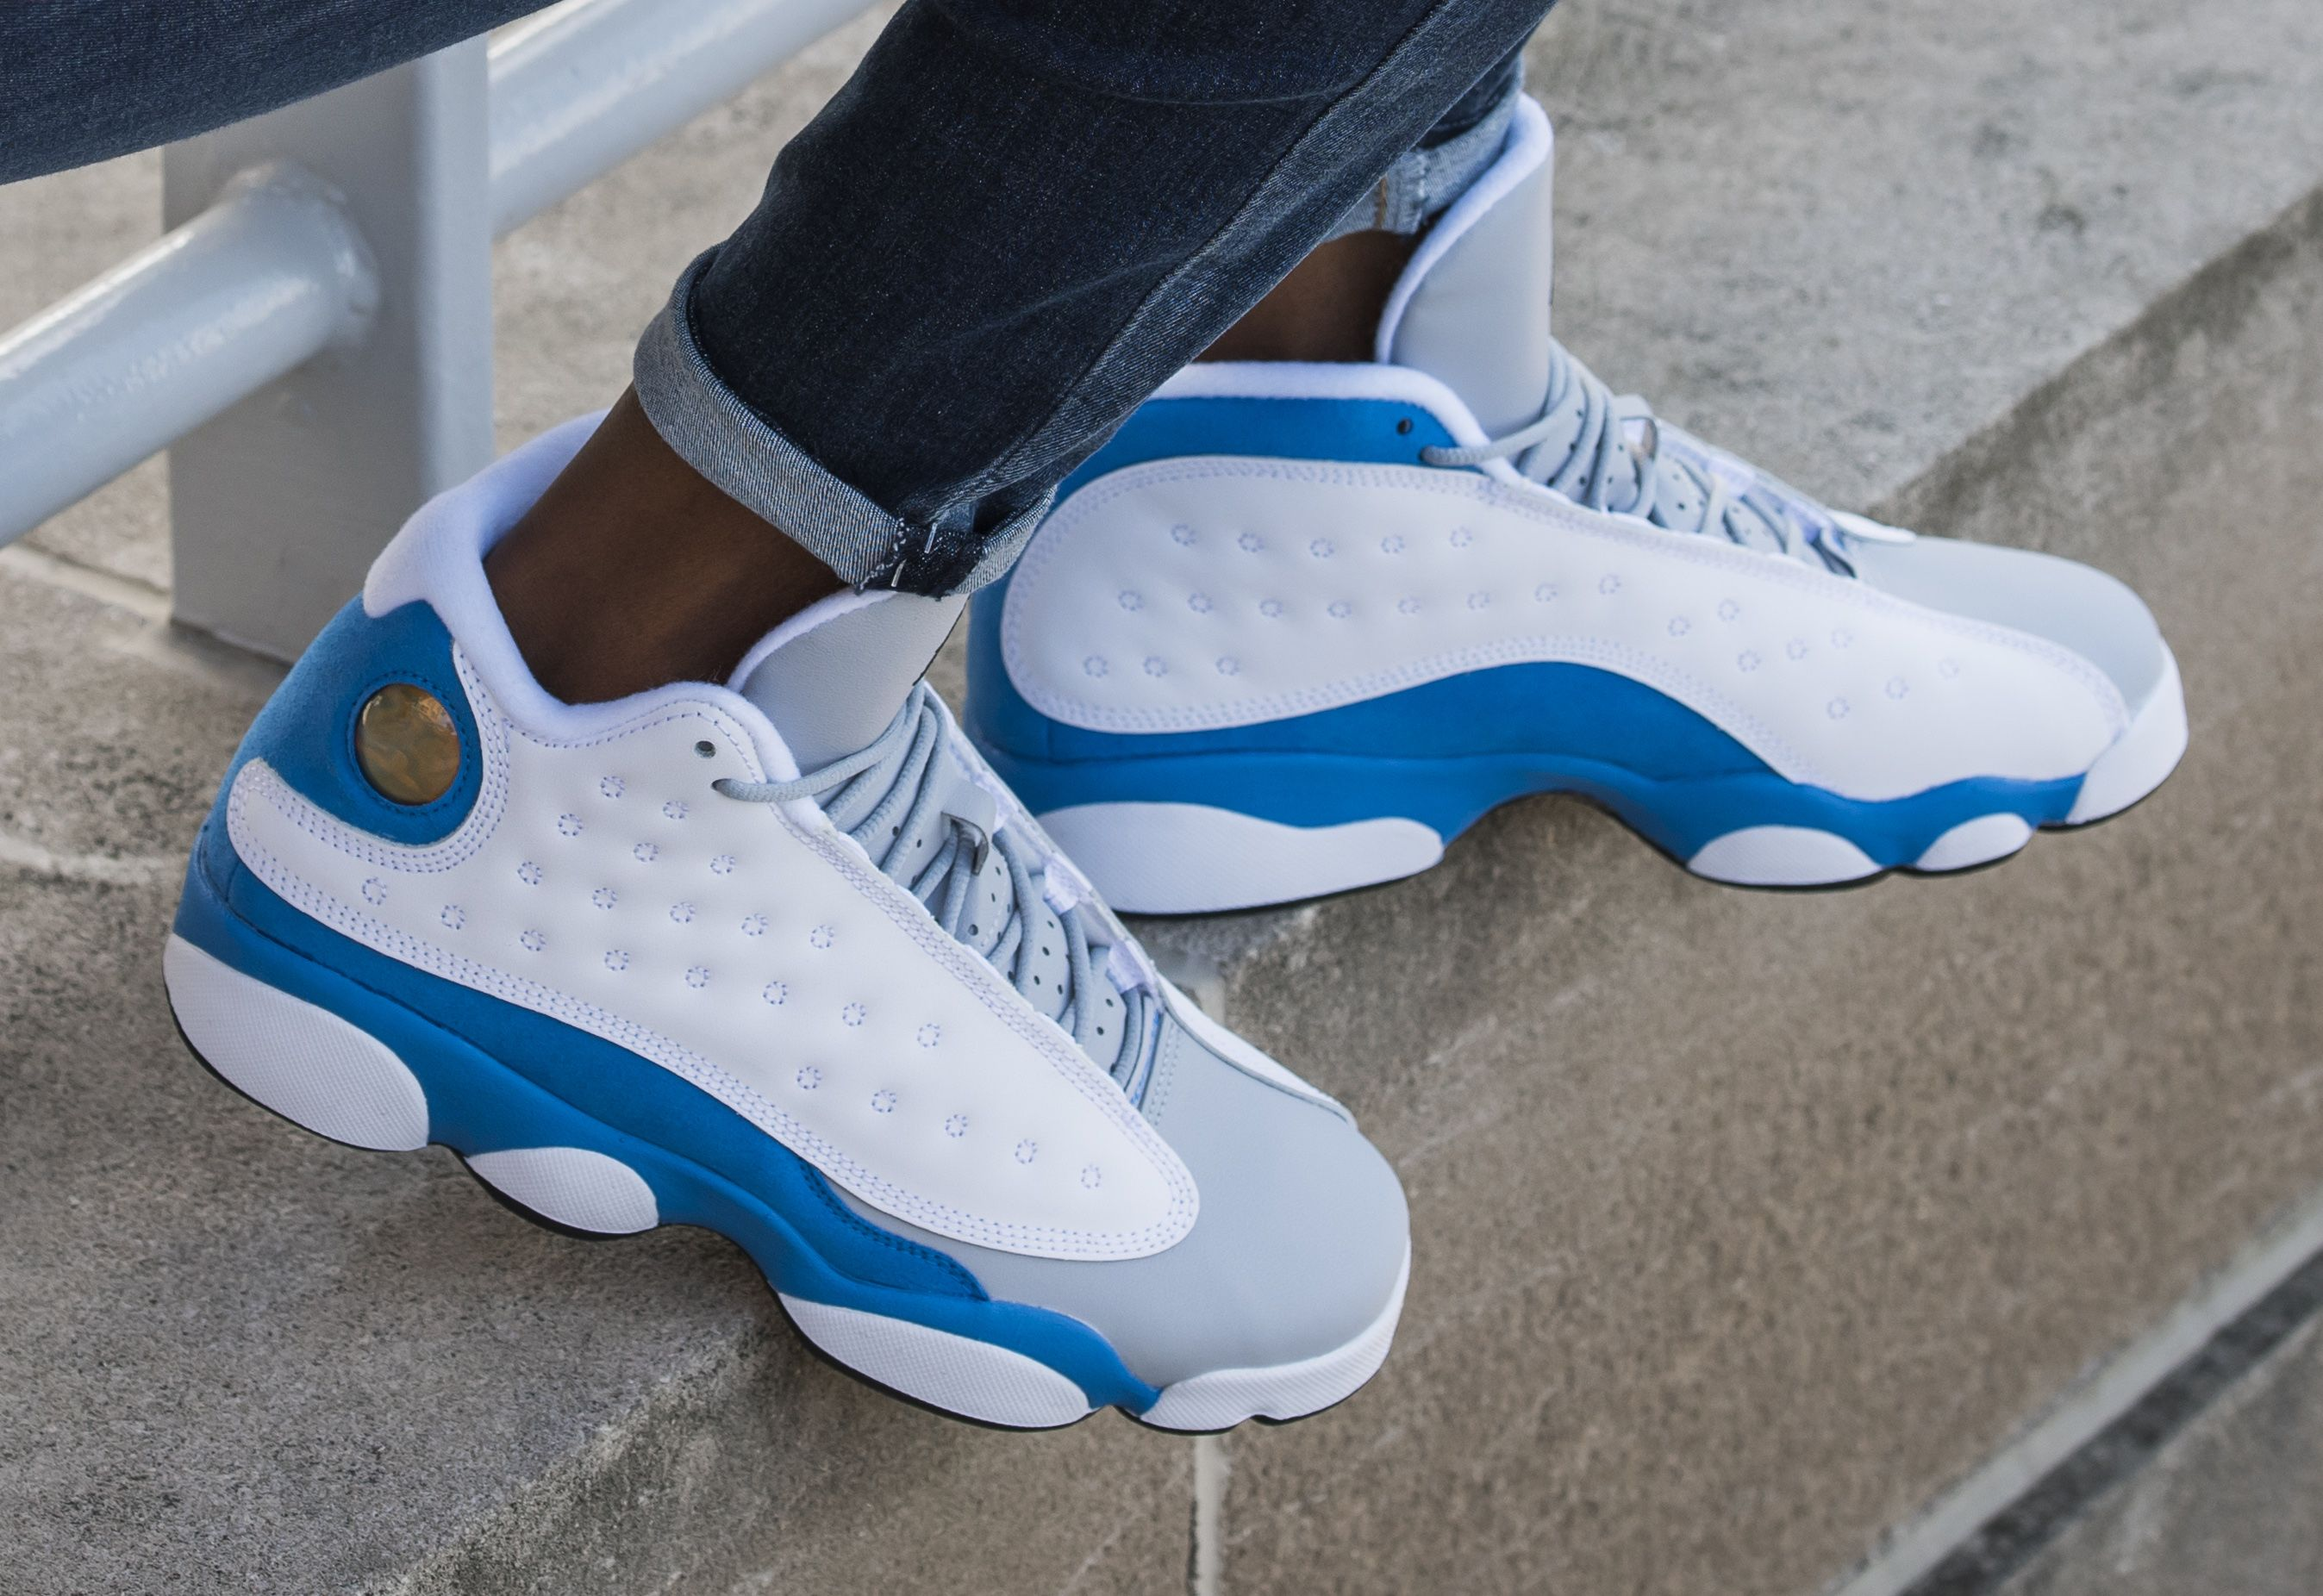 Air Jordan 13 GS Italy Blue Dropping This Weekend